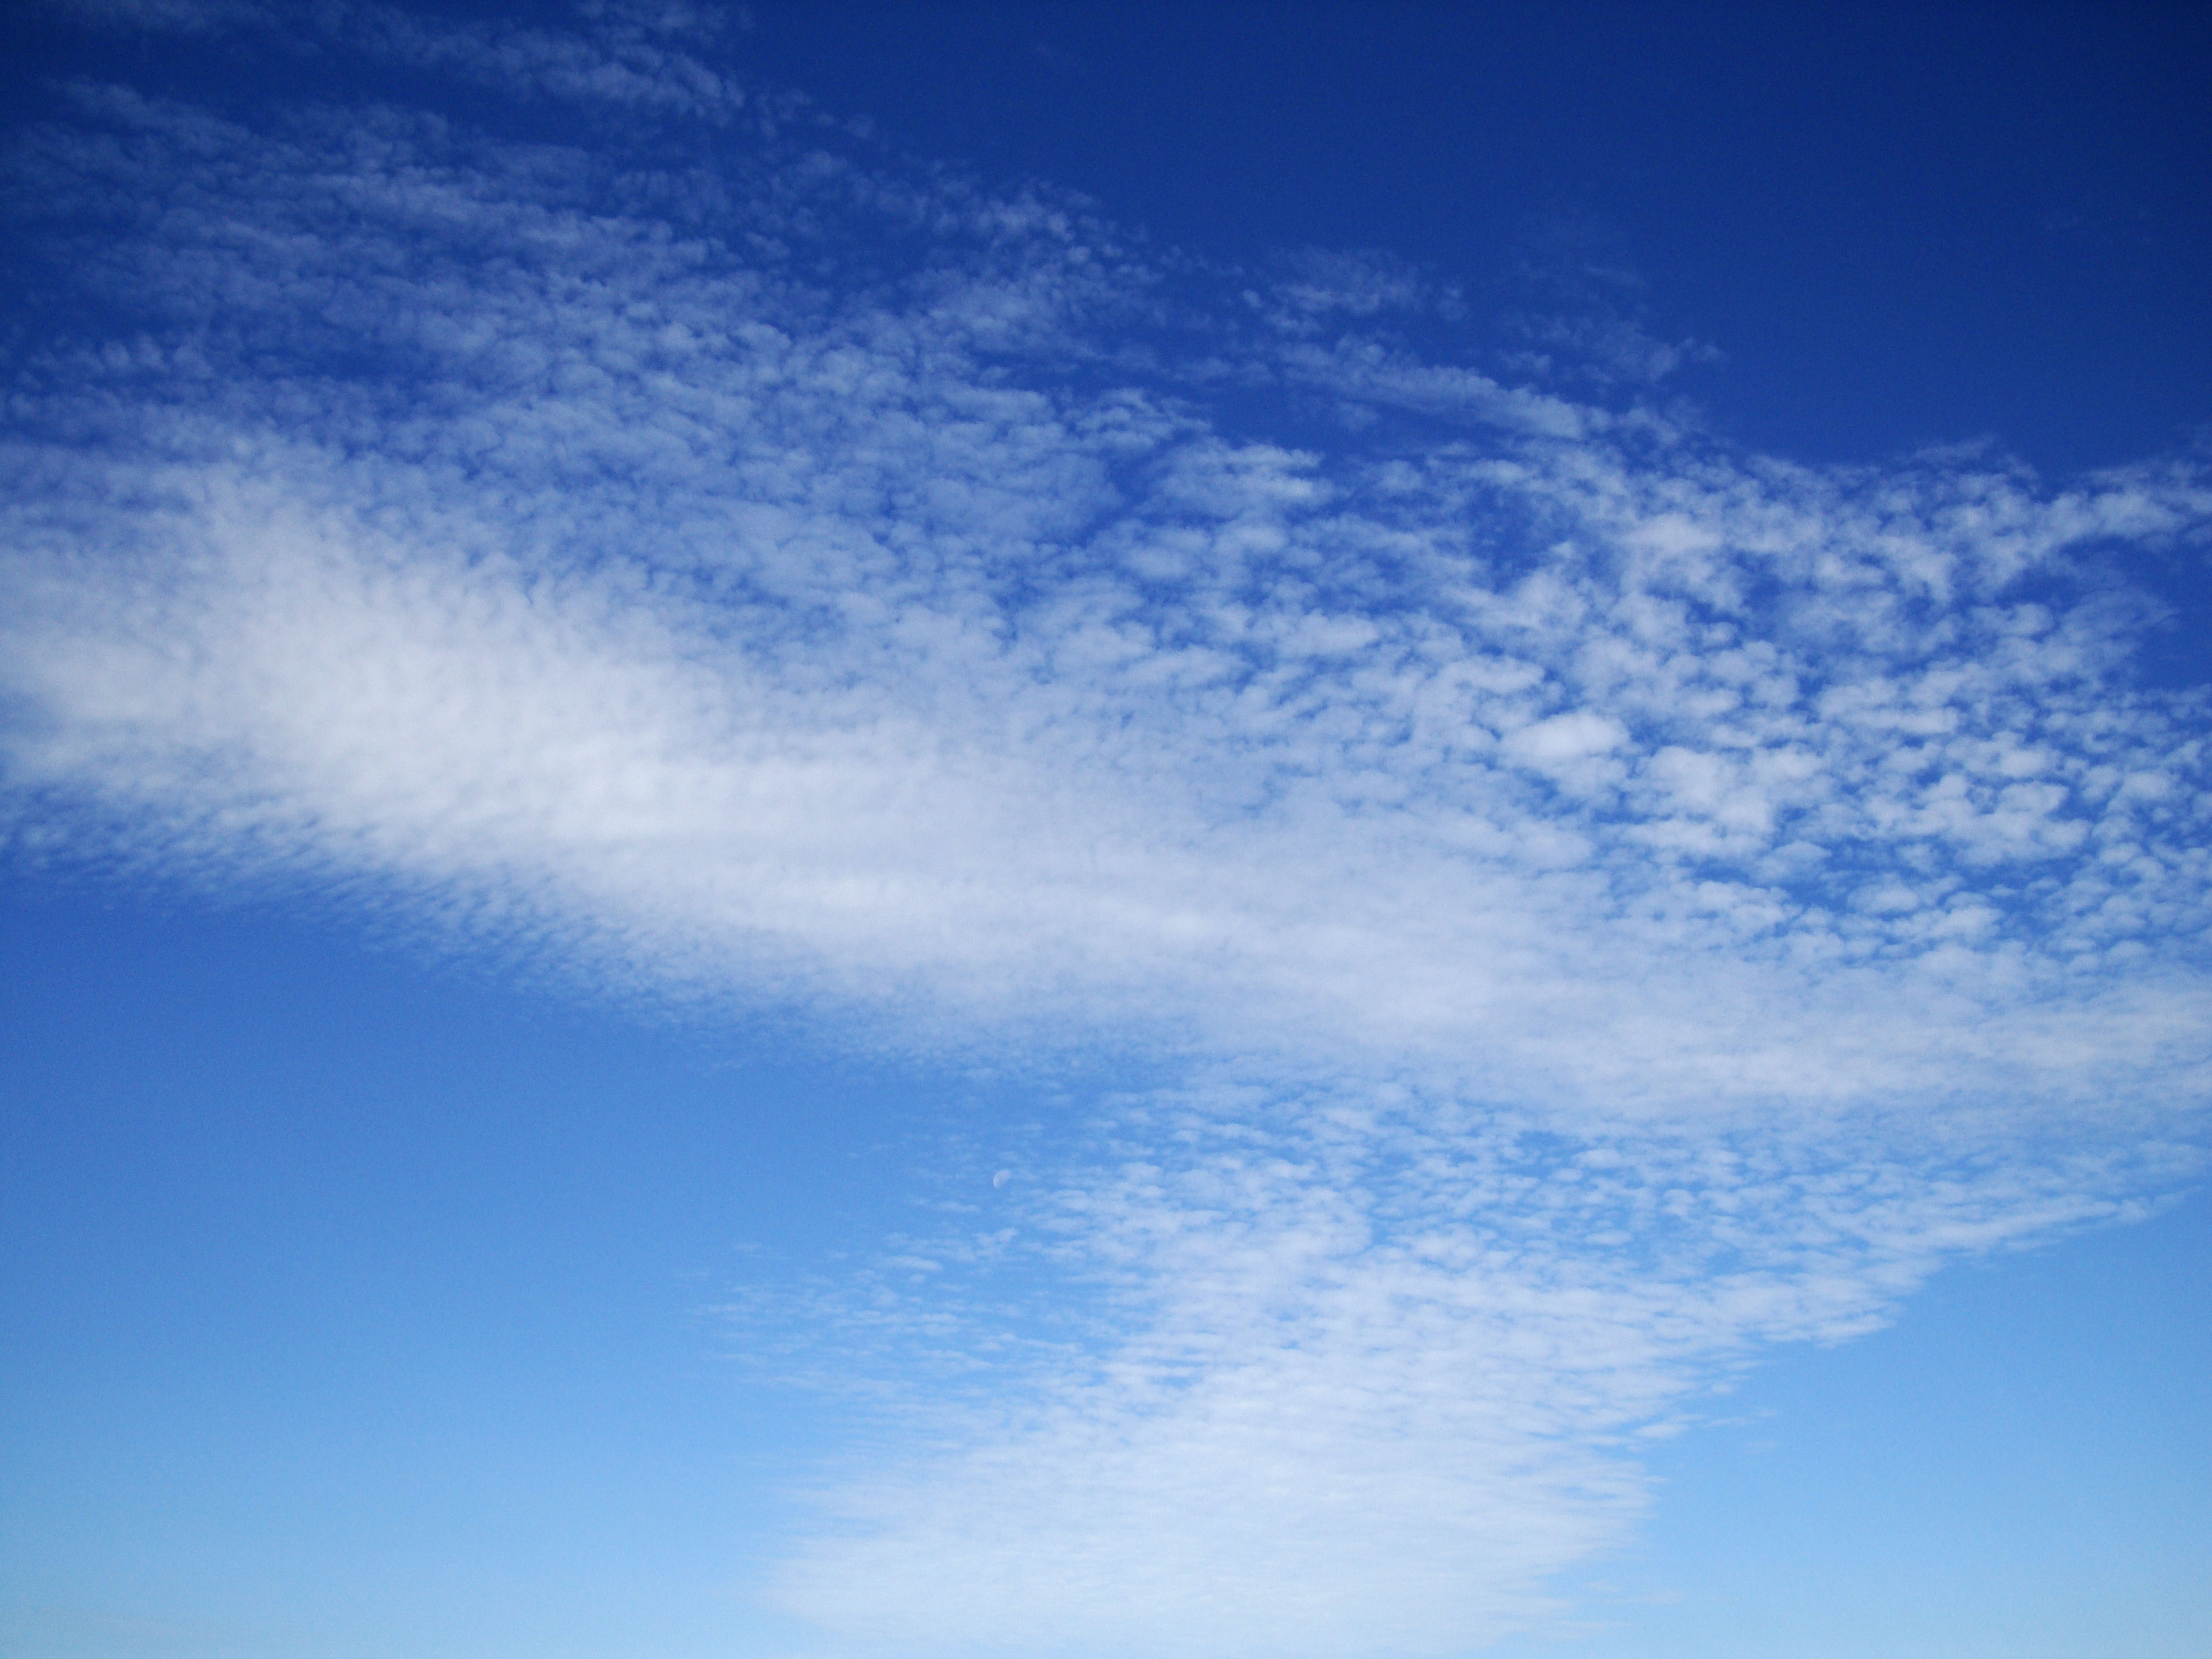 Cirrocumulus Clouds Formations Sky Storms Weather Phenomena 03